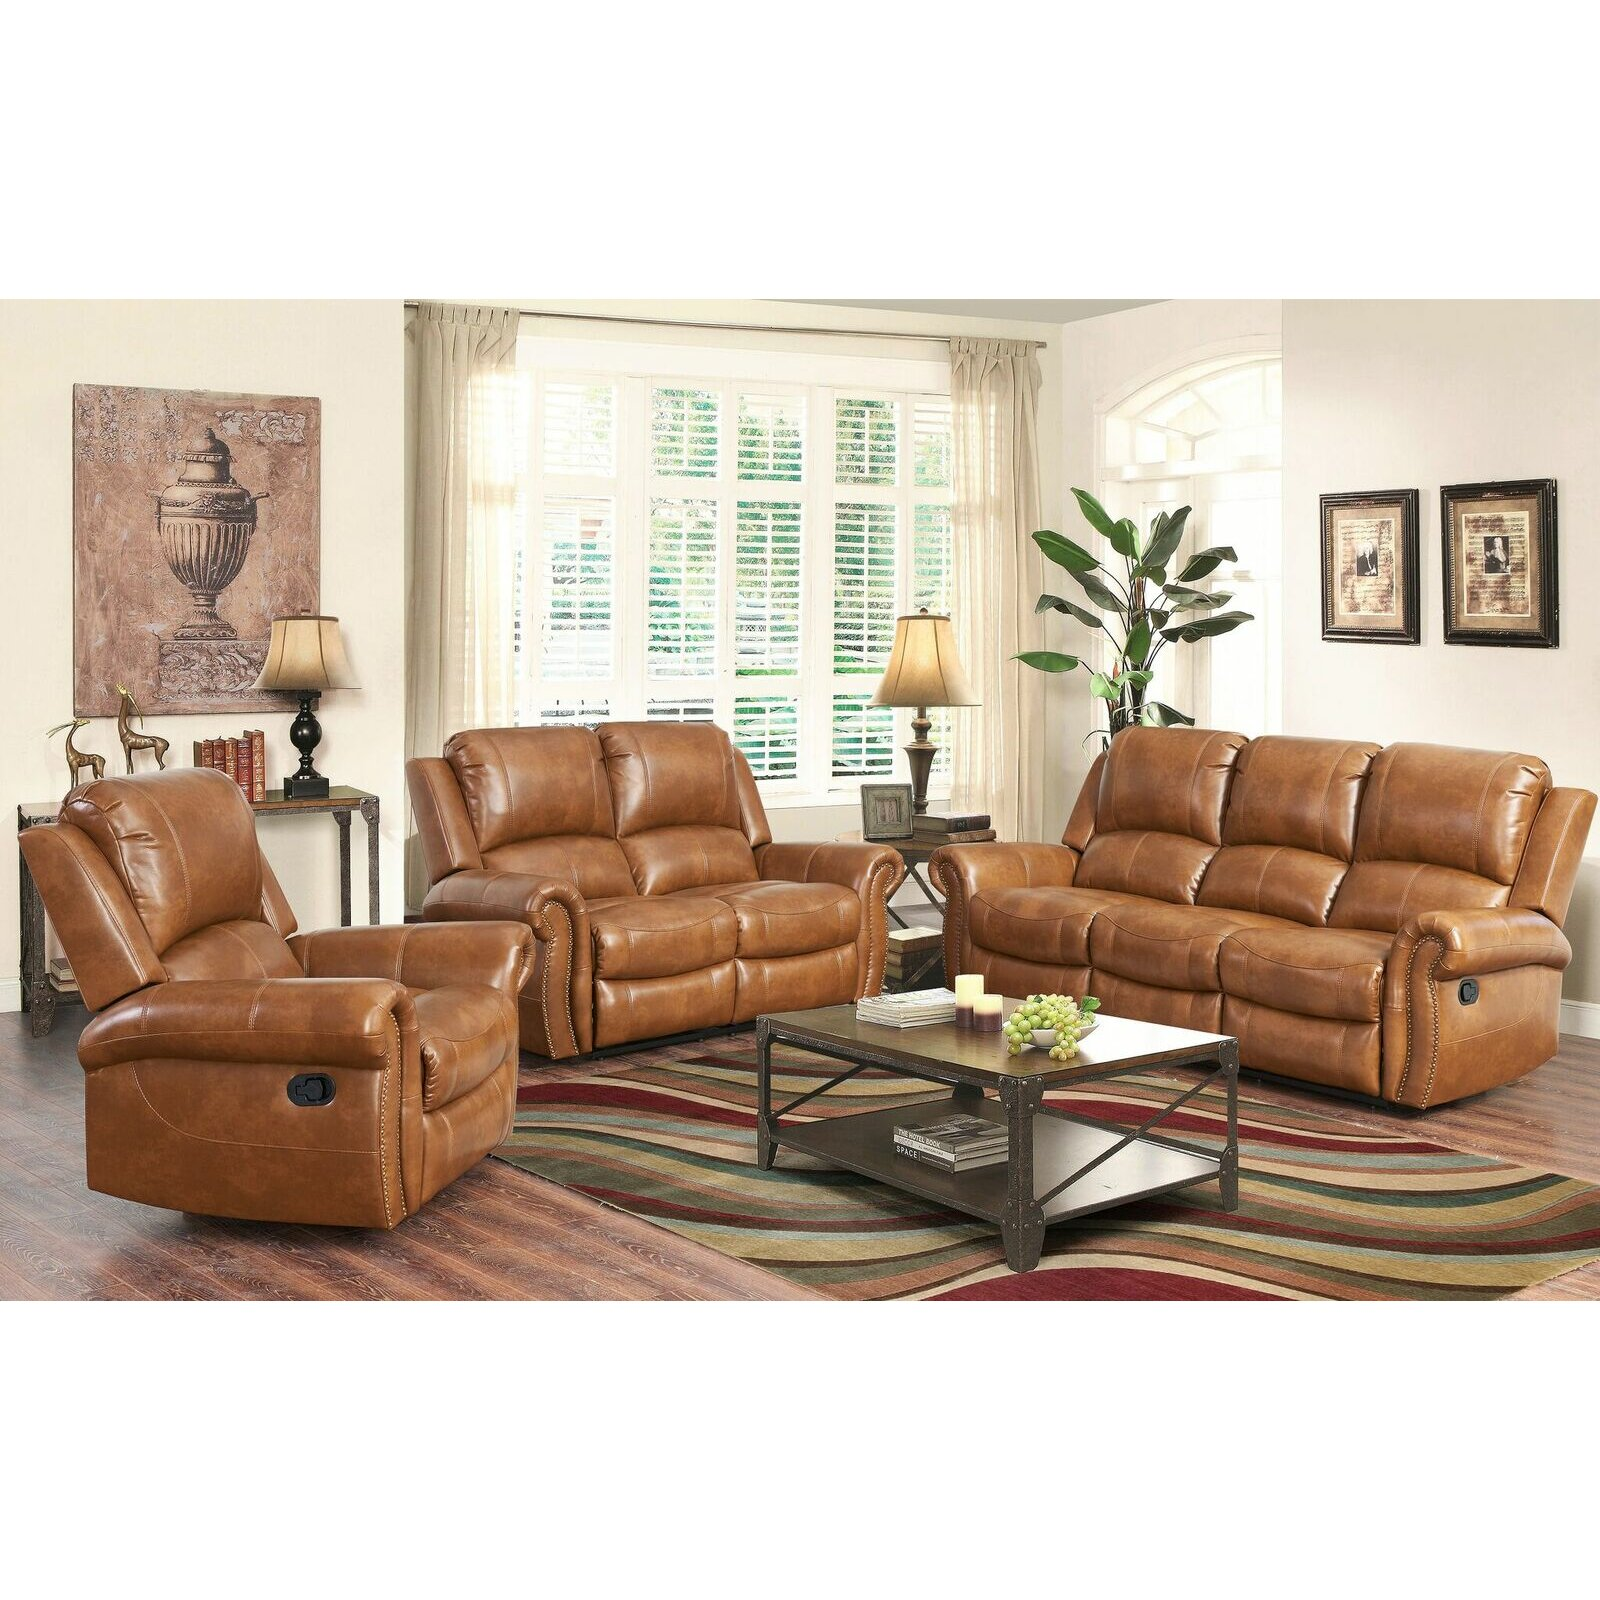 Darby home co bitter root 3 piece leather living room set for 3 piece living room set